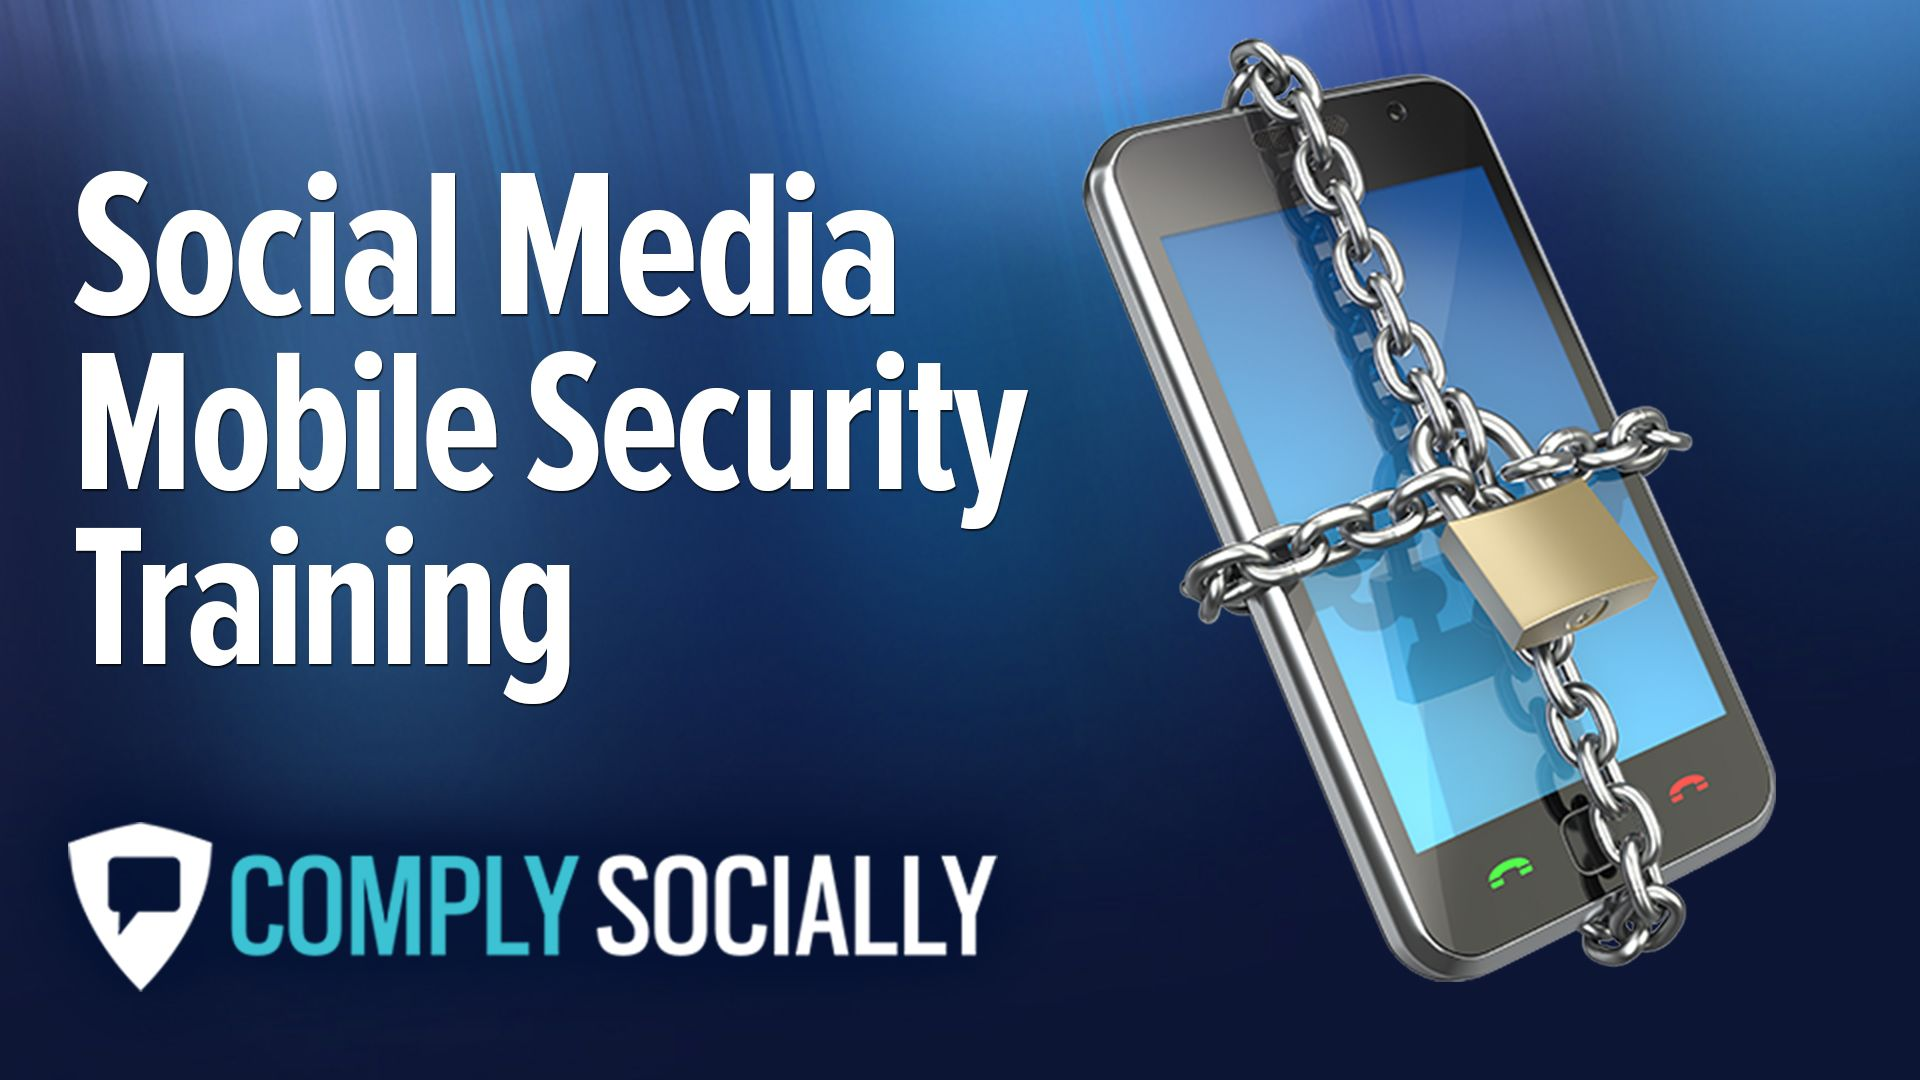 http://complysocially.com/online-social-media-policy-training/social-media-mobile-security/  Learn how to use social media smartphone without forfeiting valuable personal or business information in this self-paced, online course that you can take right now.